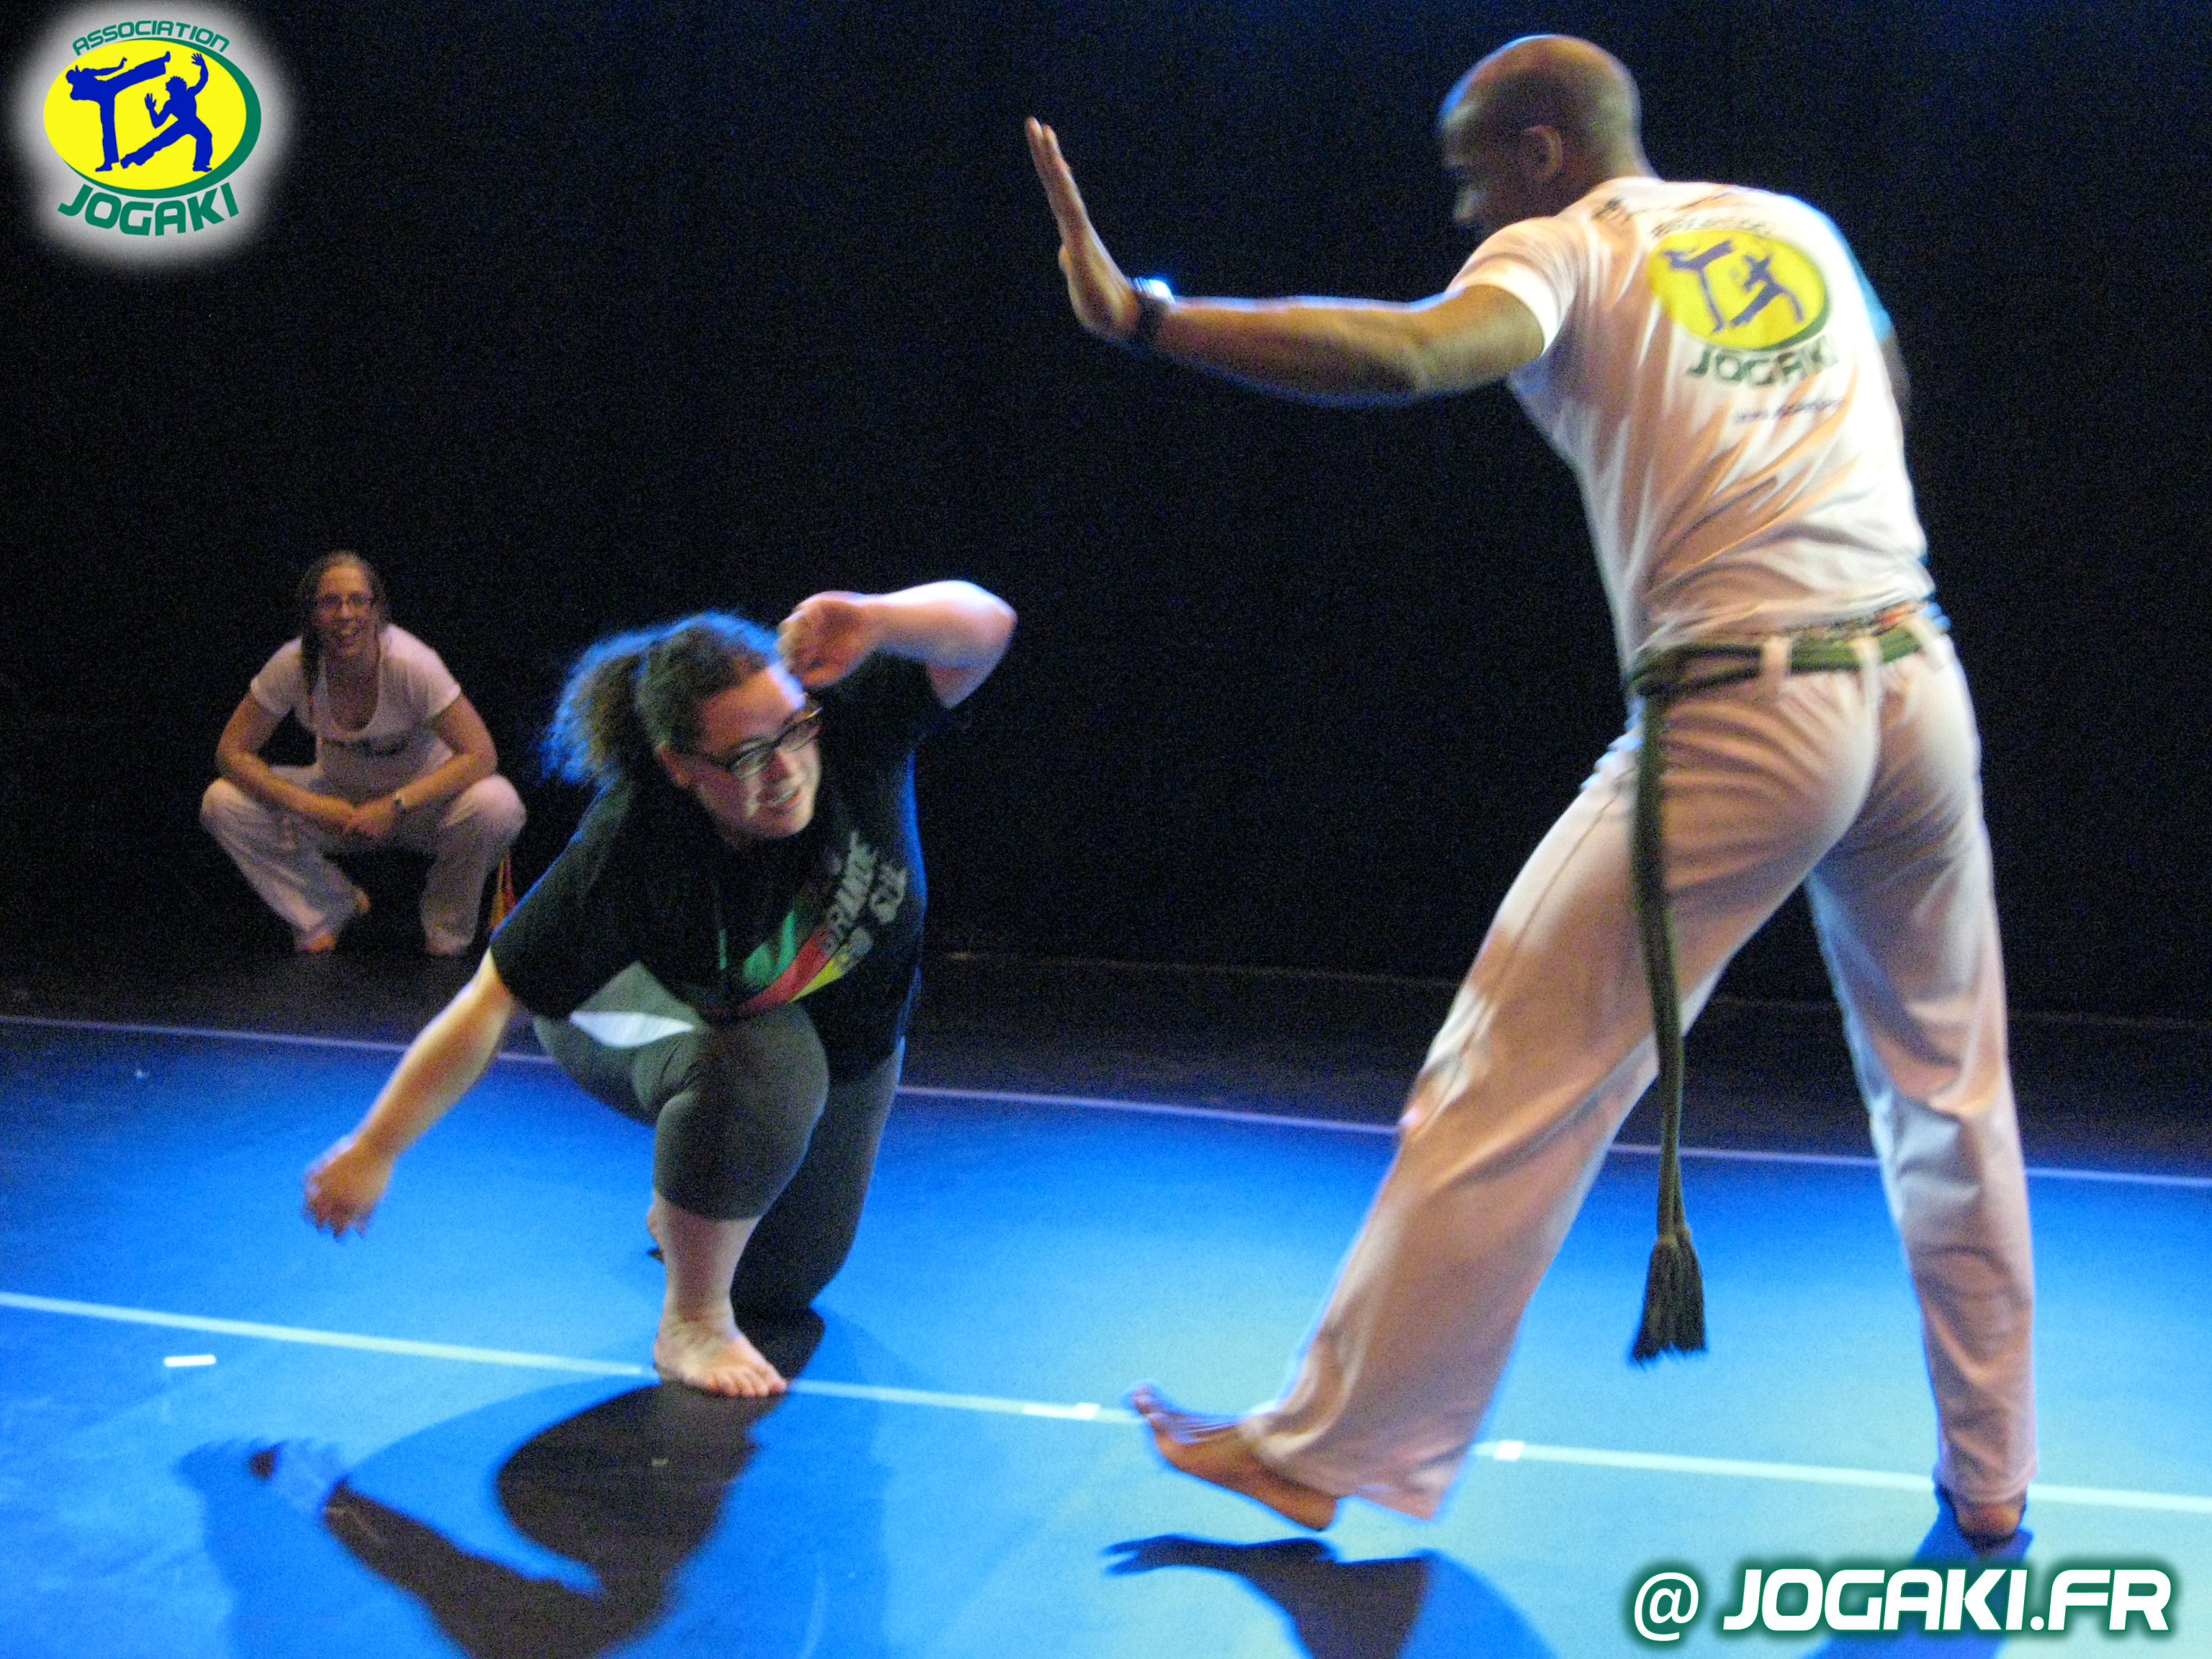 spectacle-capoeira-paris-danseurs-evenement-happening-bresil-284